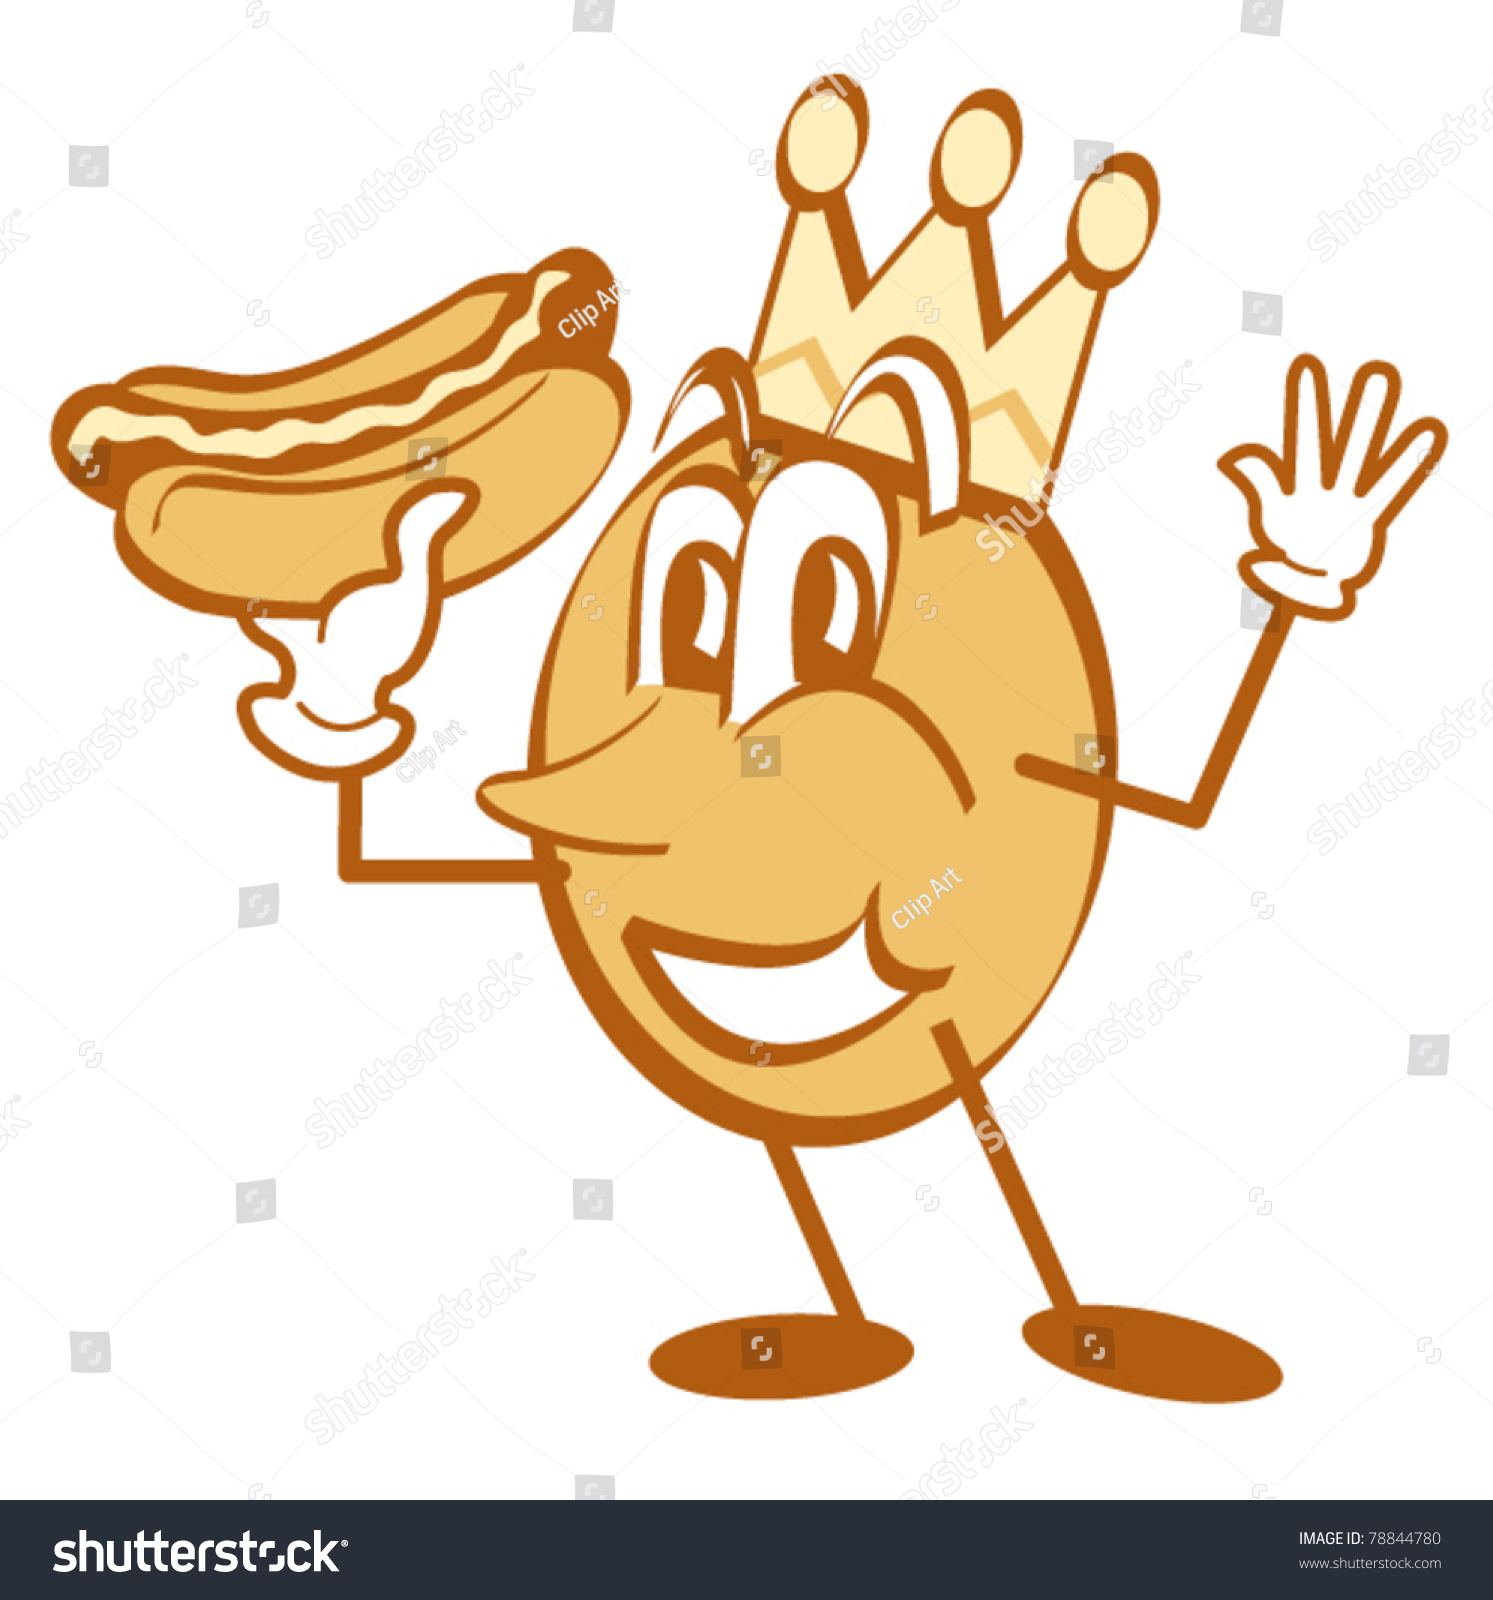 Cartoon Character Wearing Crown Holding Hotdog Stock Vector Royalty Free 78844780 Cartoon crown transparent images (1,796). https www shutterstock com image vector cartoon character wearing crown holding hotdog 78844780